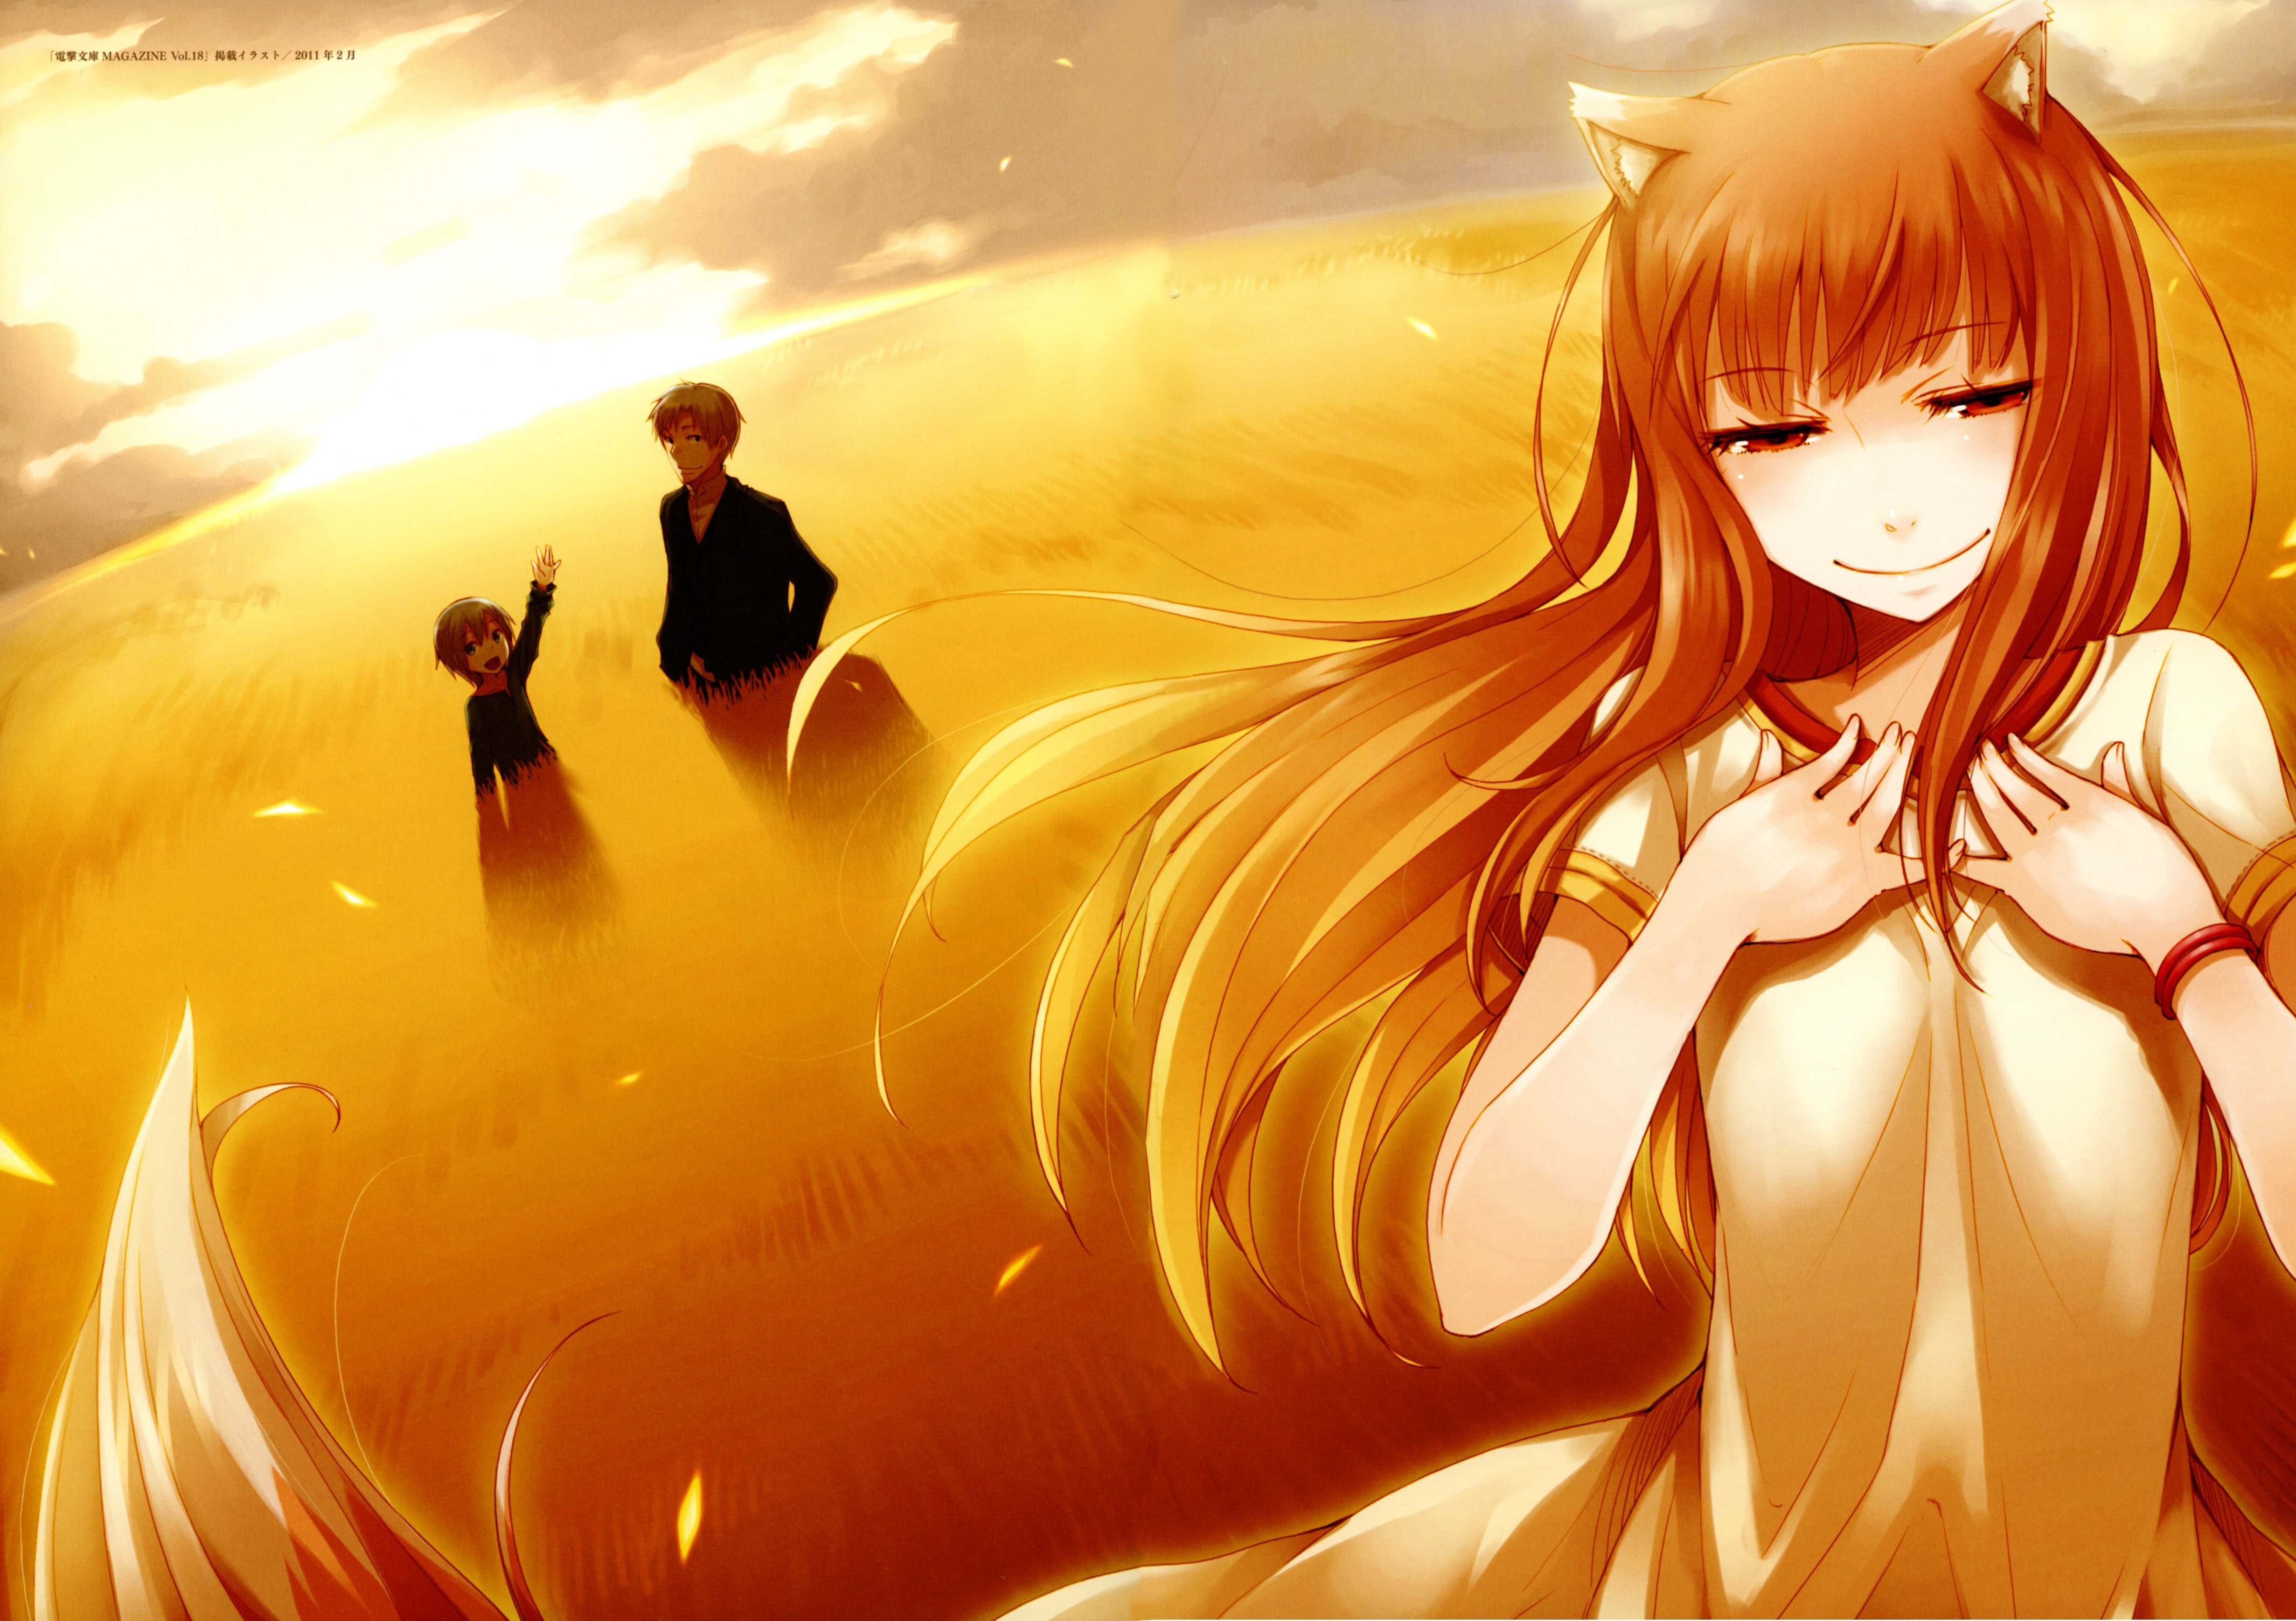 Wallpaper Spice and wolf Horo Girl Move Smile Feathers HD